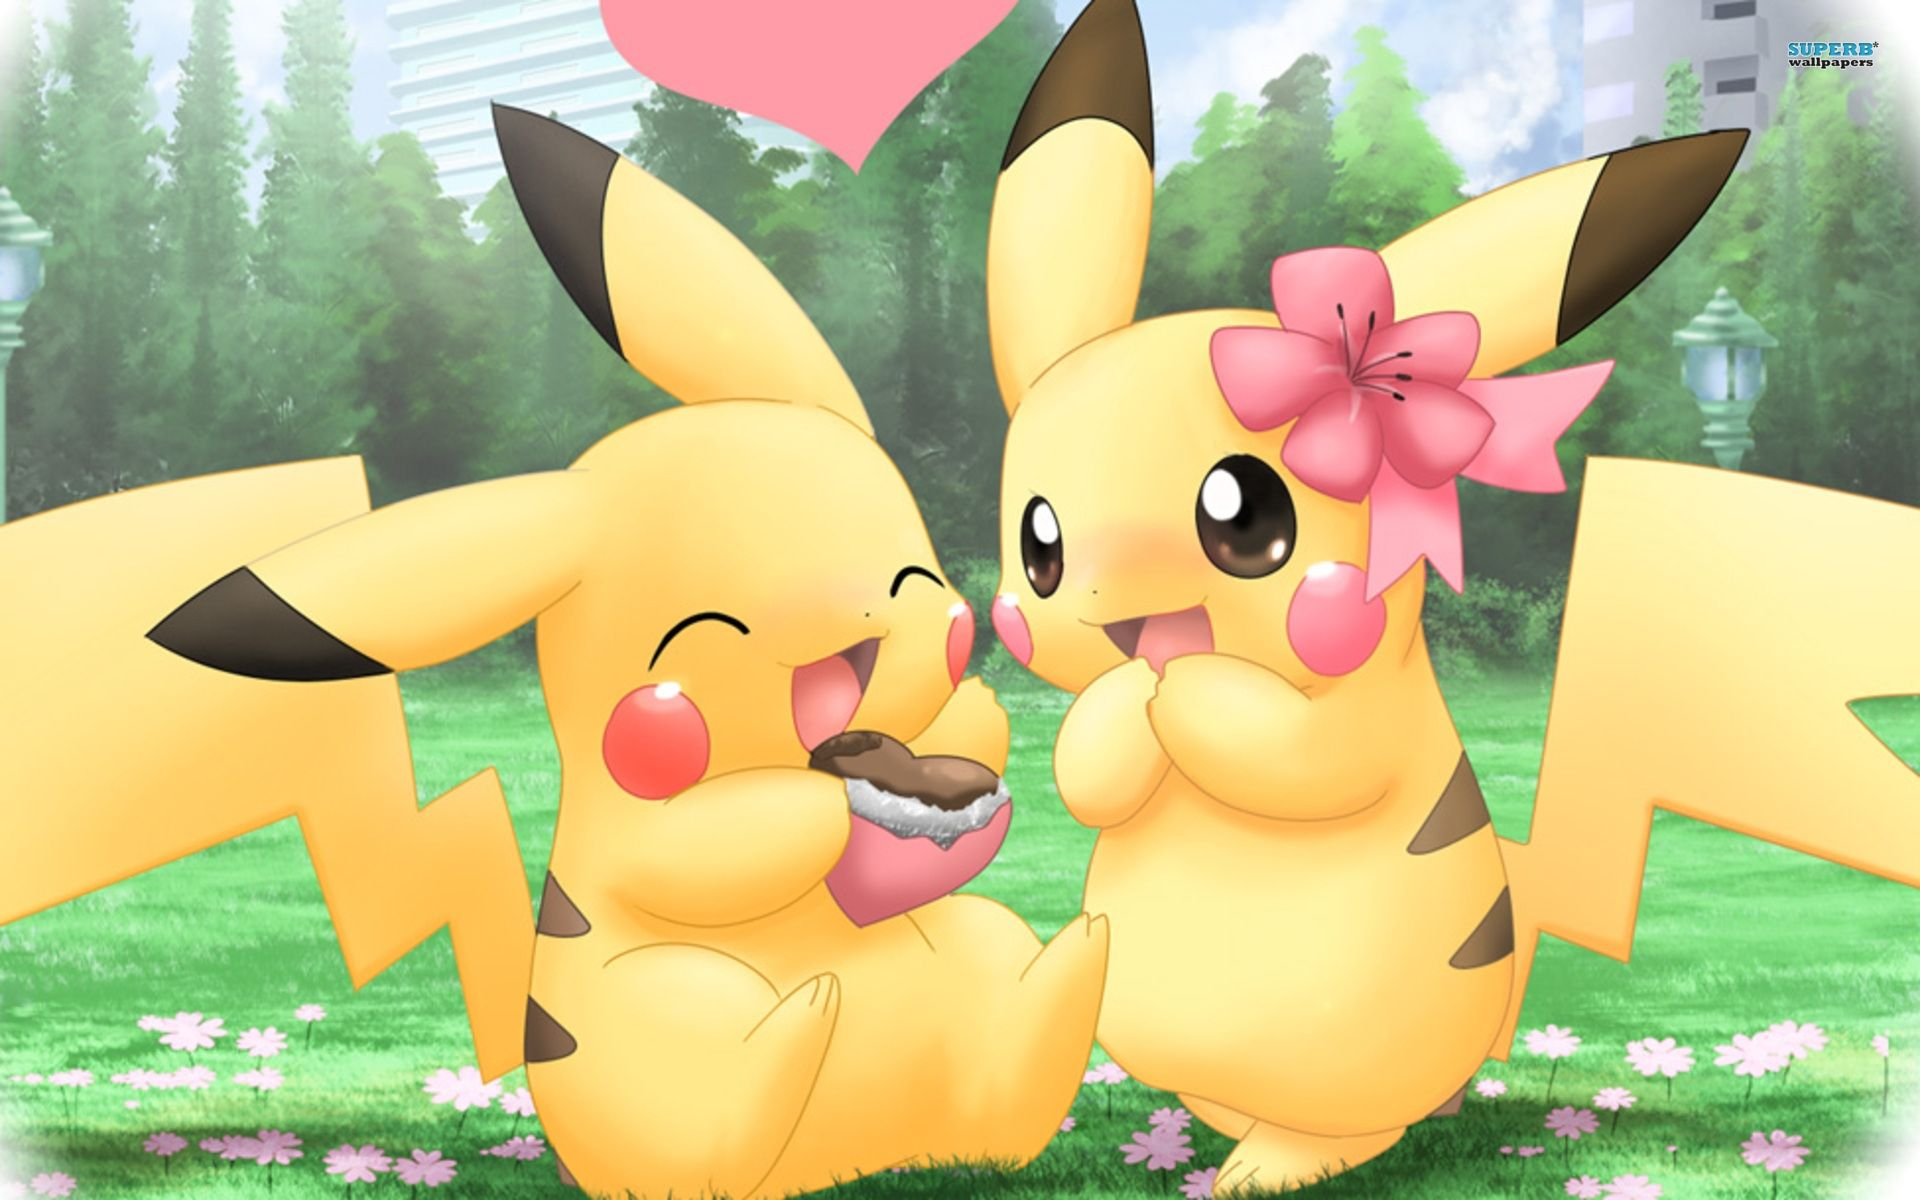 I Personally Ship Pikachu And Buneary But This Is Adorable